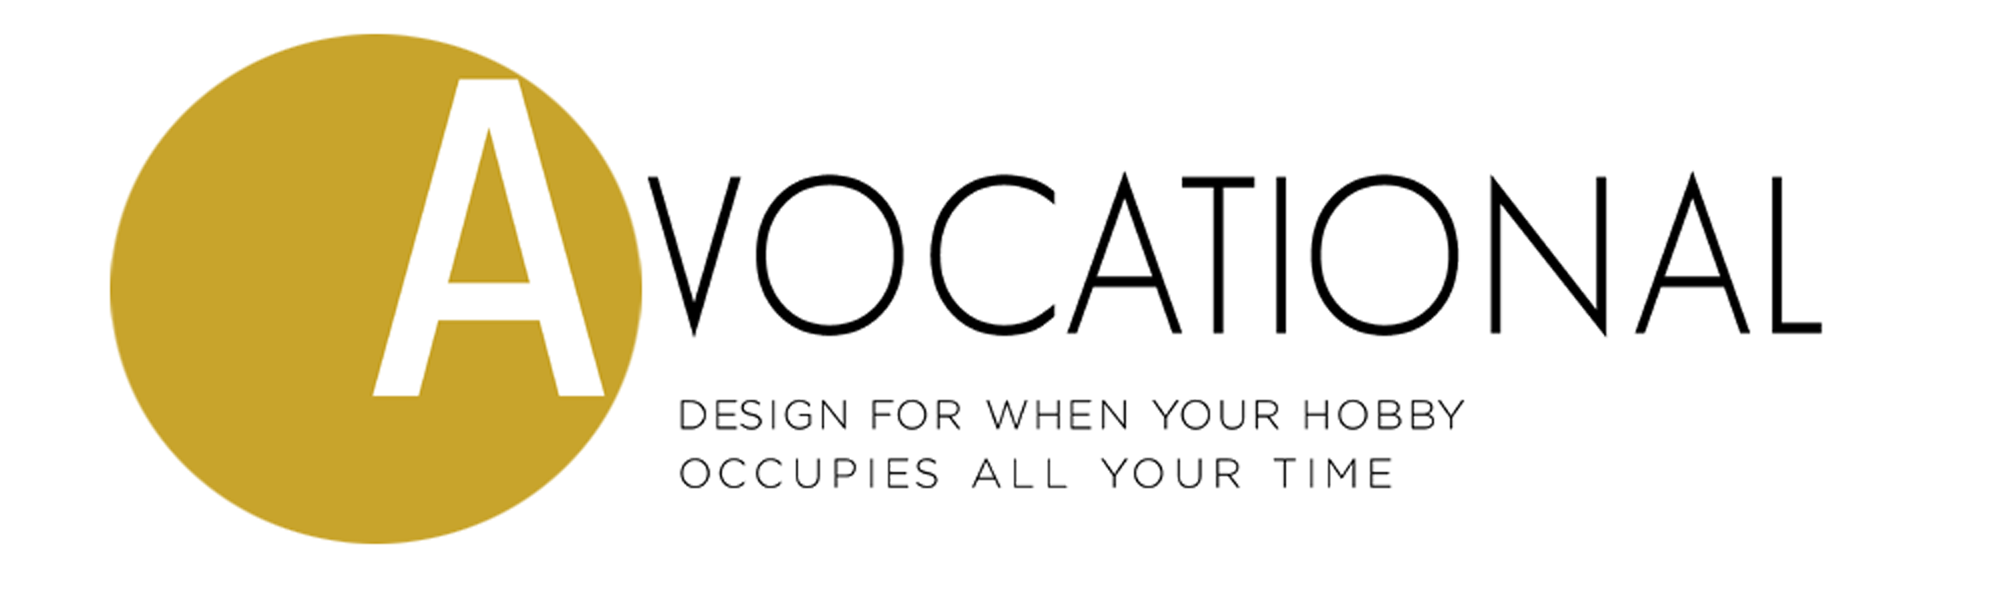 Avocational Design